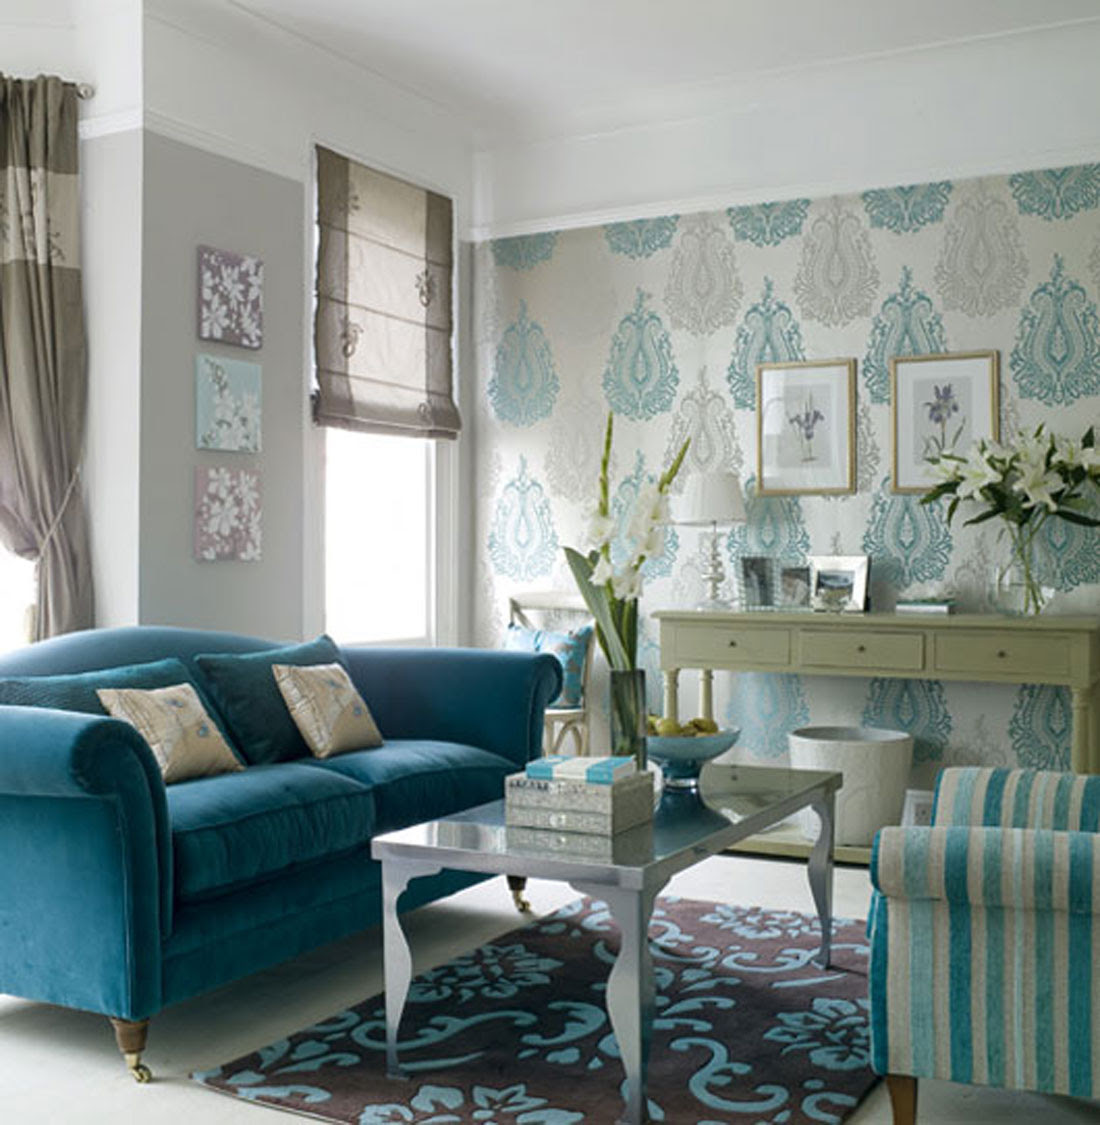 The Texture of Teal and Turquoise - A Bold and Beautiful ...